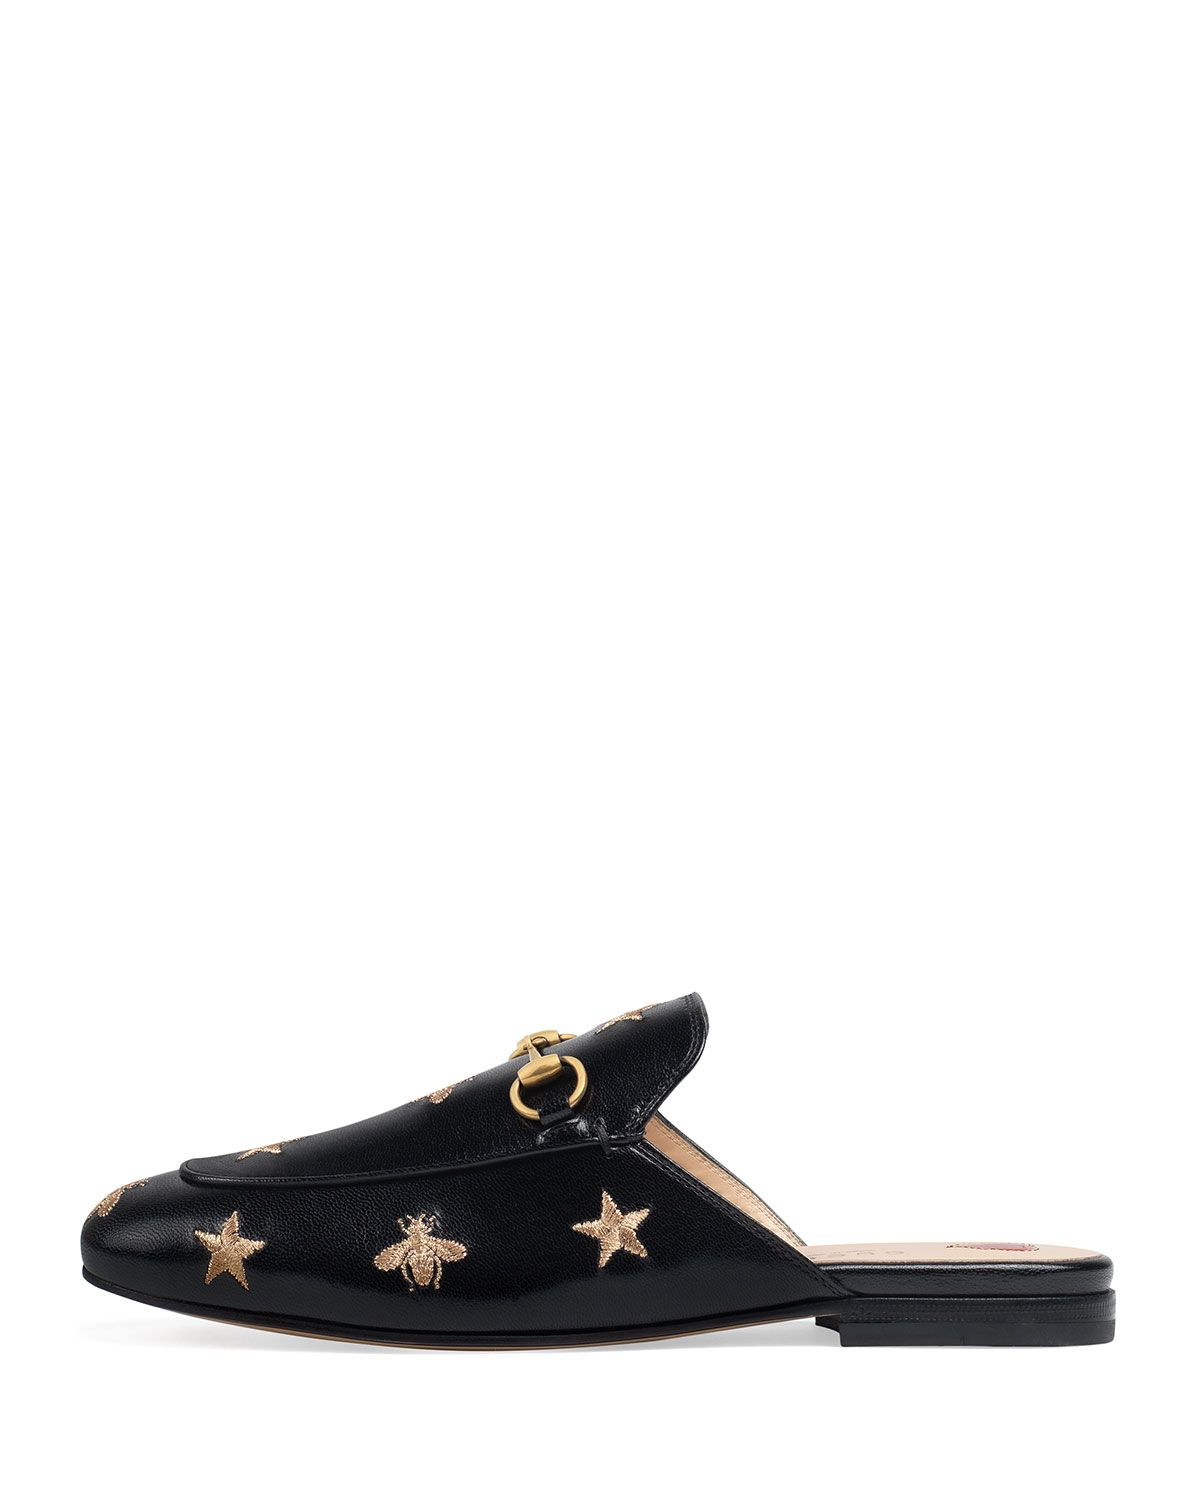 ad8b84d8643 Gucci Princetown Bee and Star Flat Mule